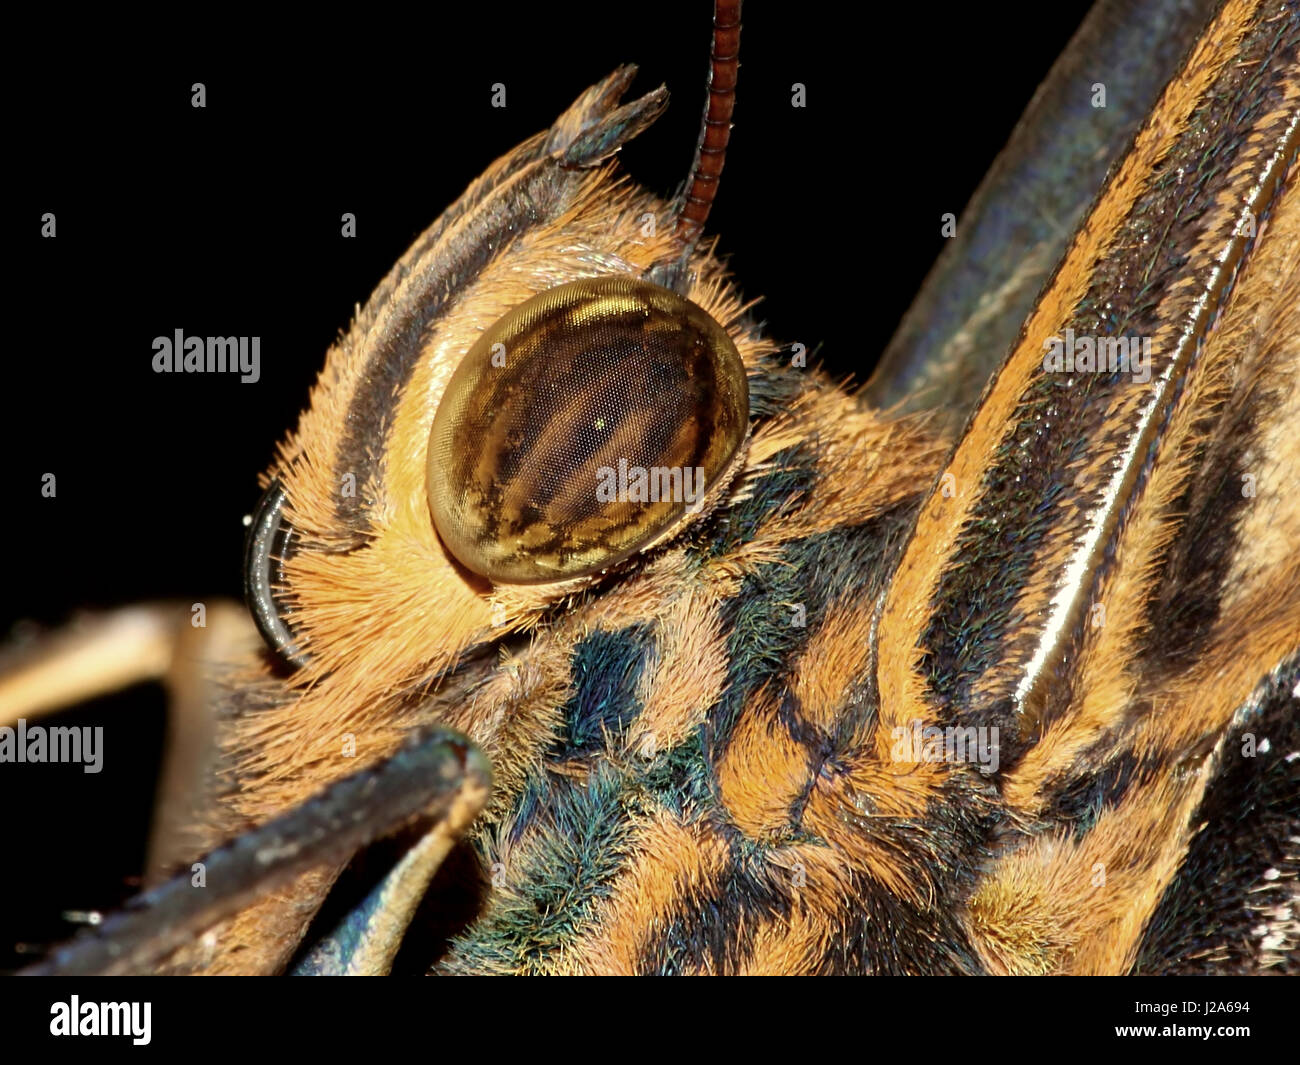 Extreme close up of the head of a South American Yellow edged Giant Owl butterfly (Caligo atreus). - Stock Image